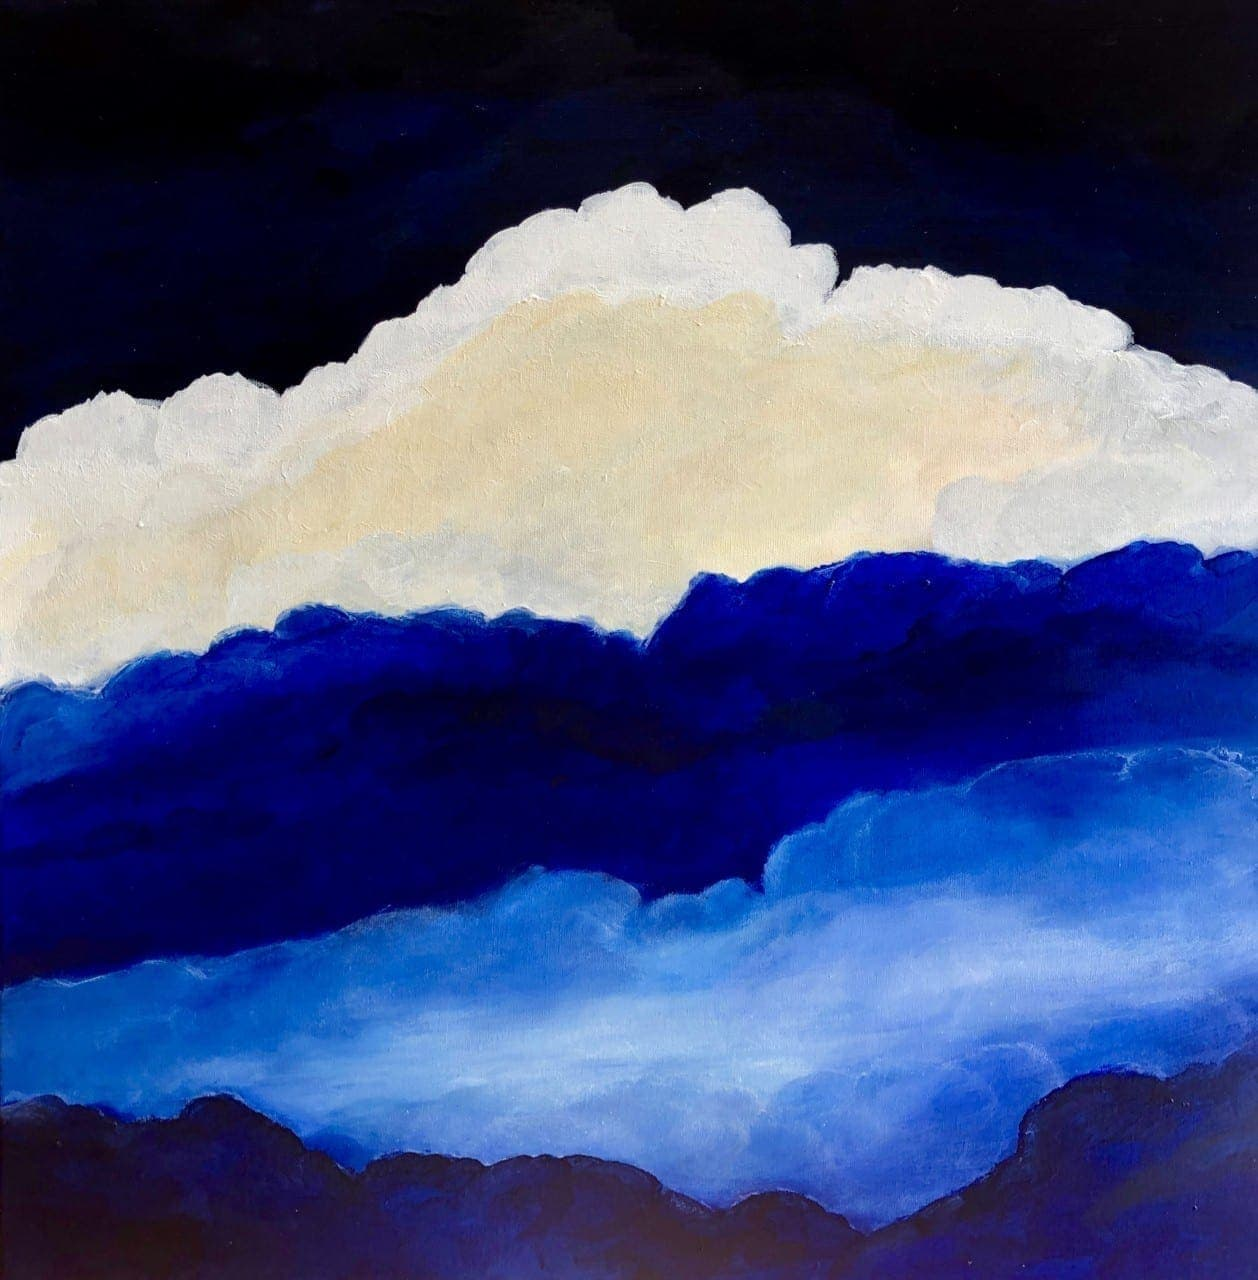 """""""Atmosphere"""" oil on canvas painting of clouds measuring 60 x 60 cm or 23.5 x 23.5 inches. With blue and white clouds and a deep indigo blue sky."""